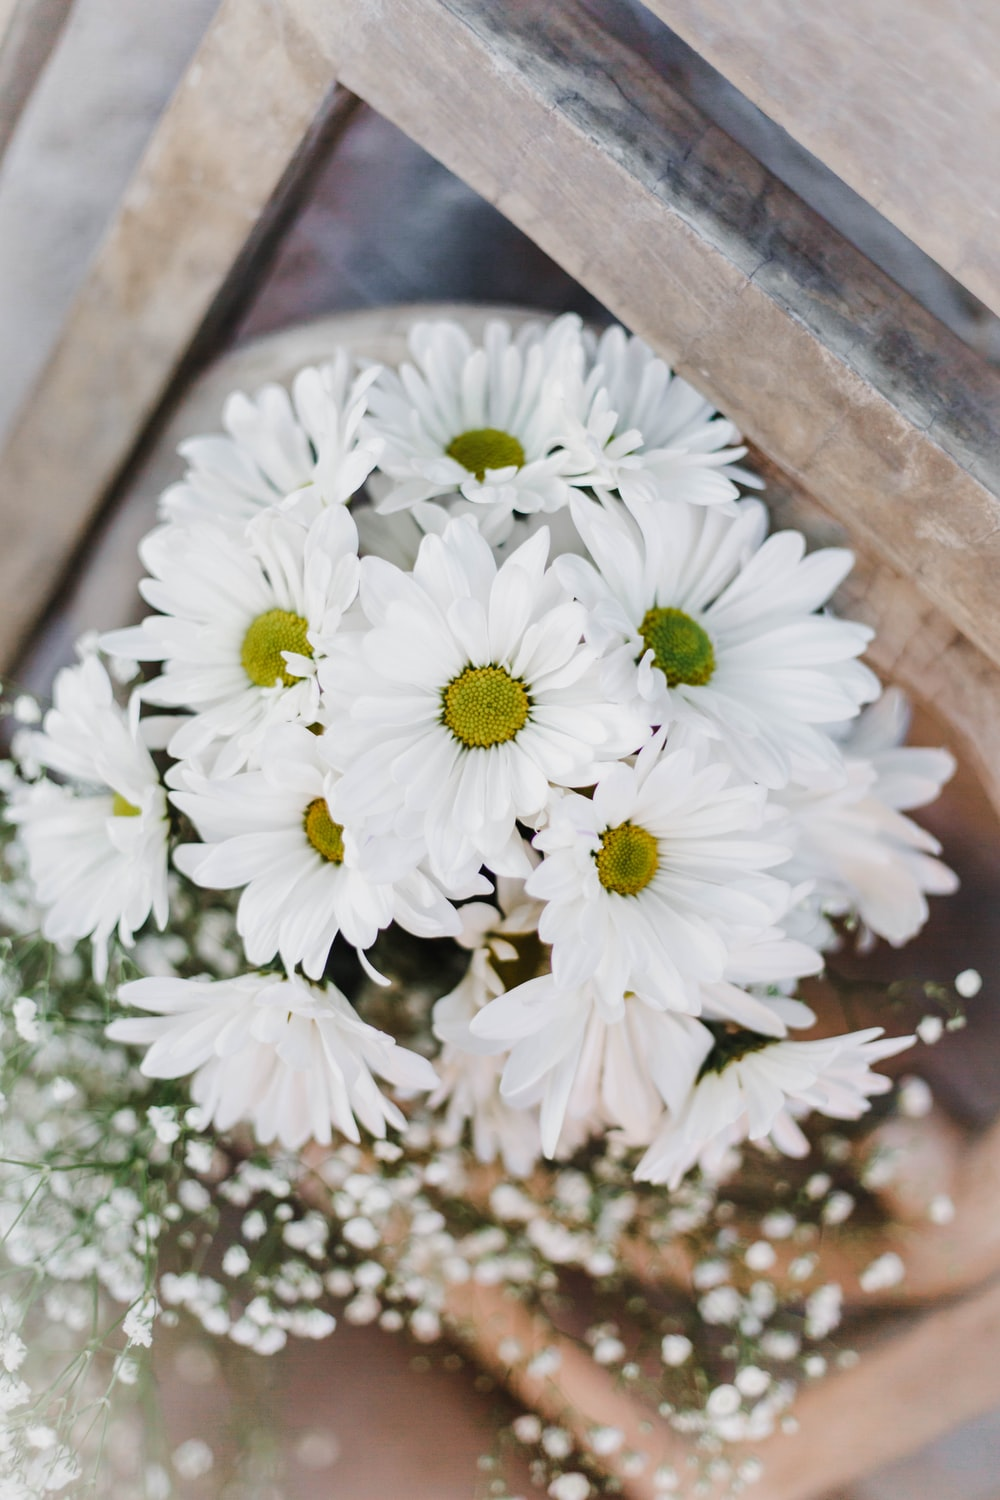 white flowers on brown surface